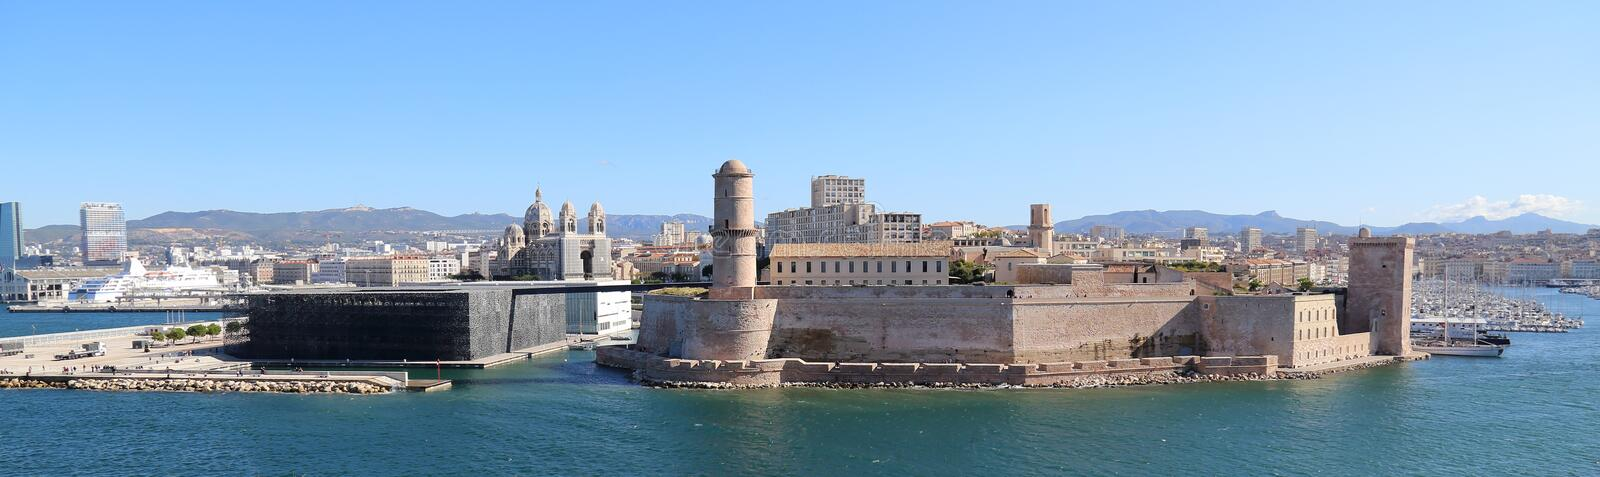 Old harbor of Marseille, France stock images